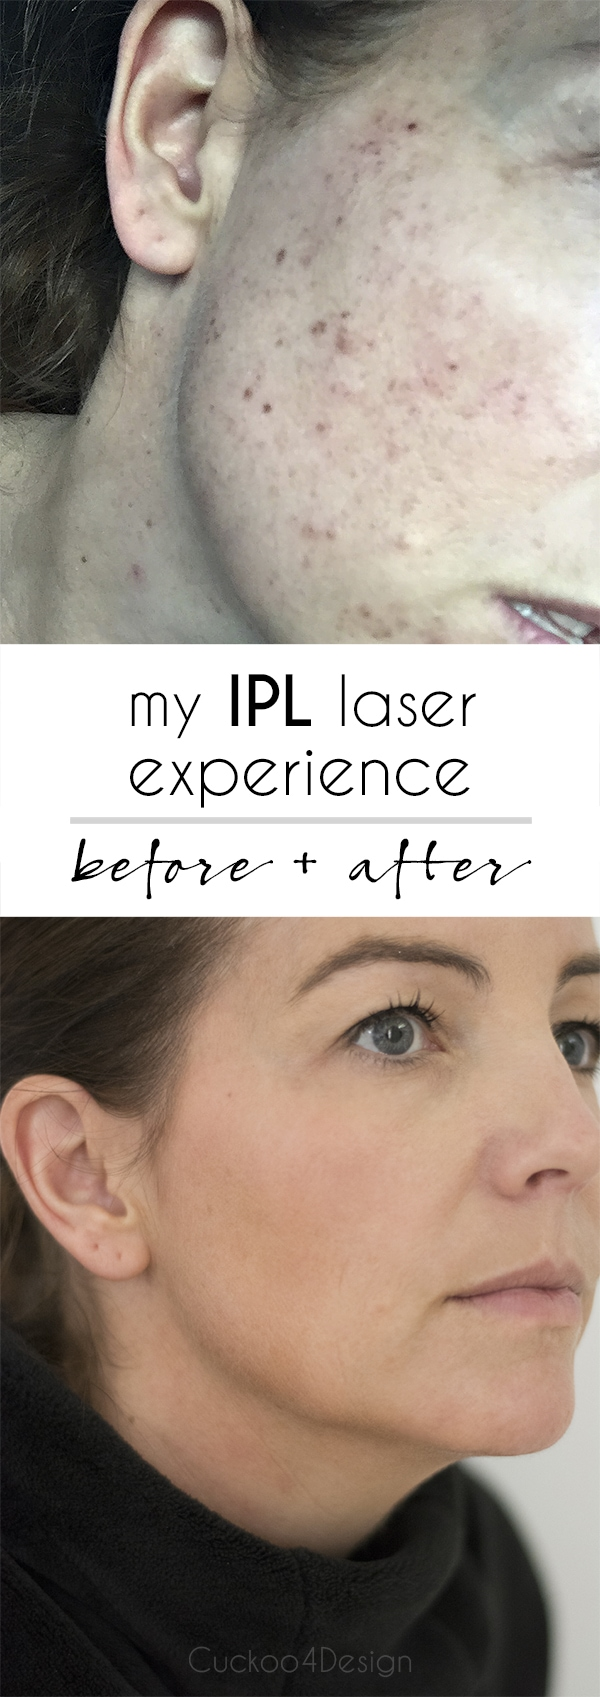 IPL treatment before and after